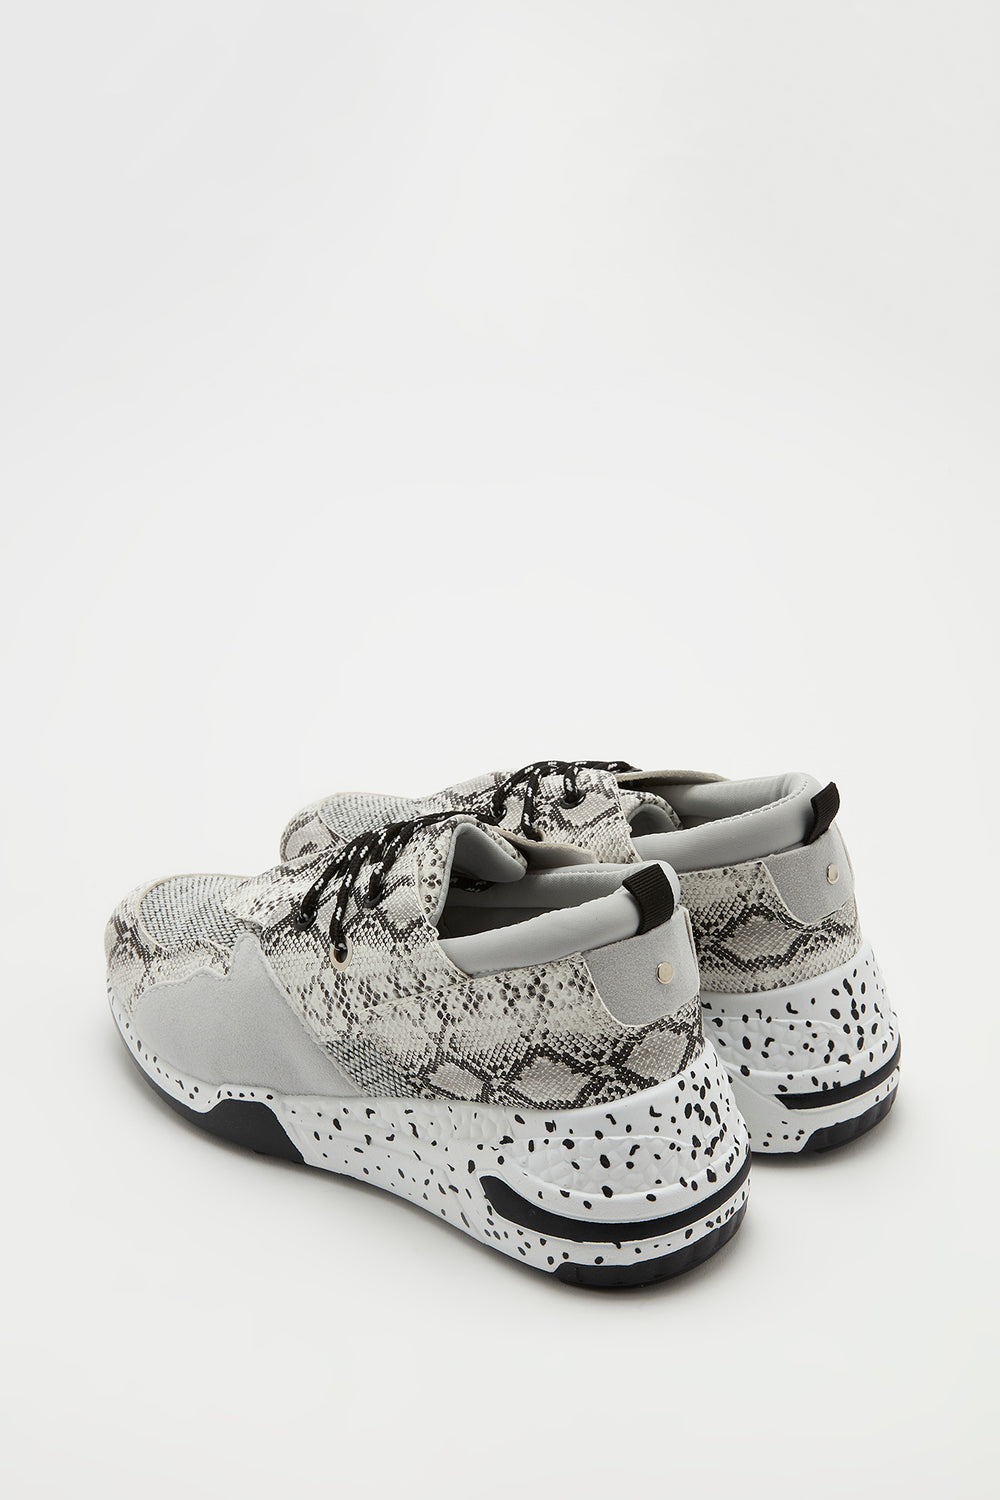 Lace-Up Speckle Outsole Sneaker Black with White